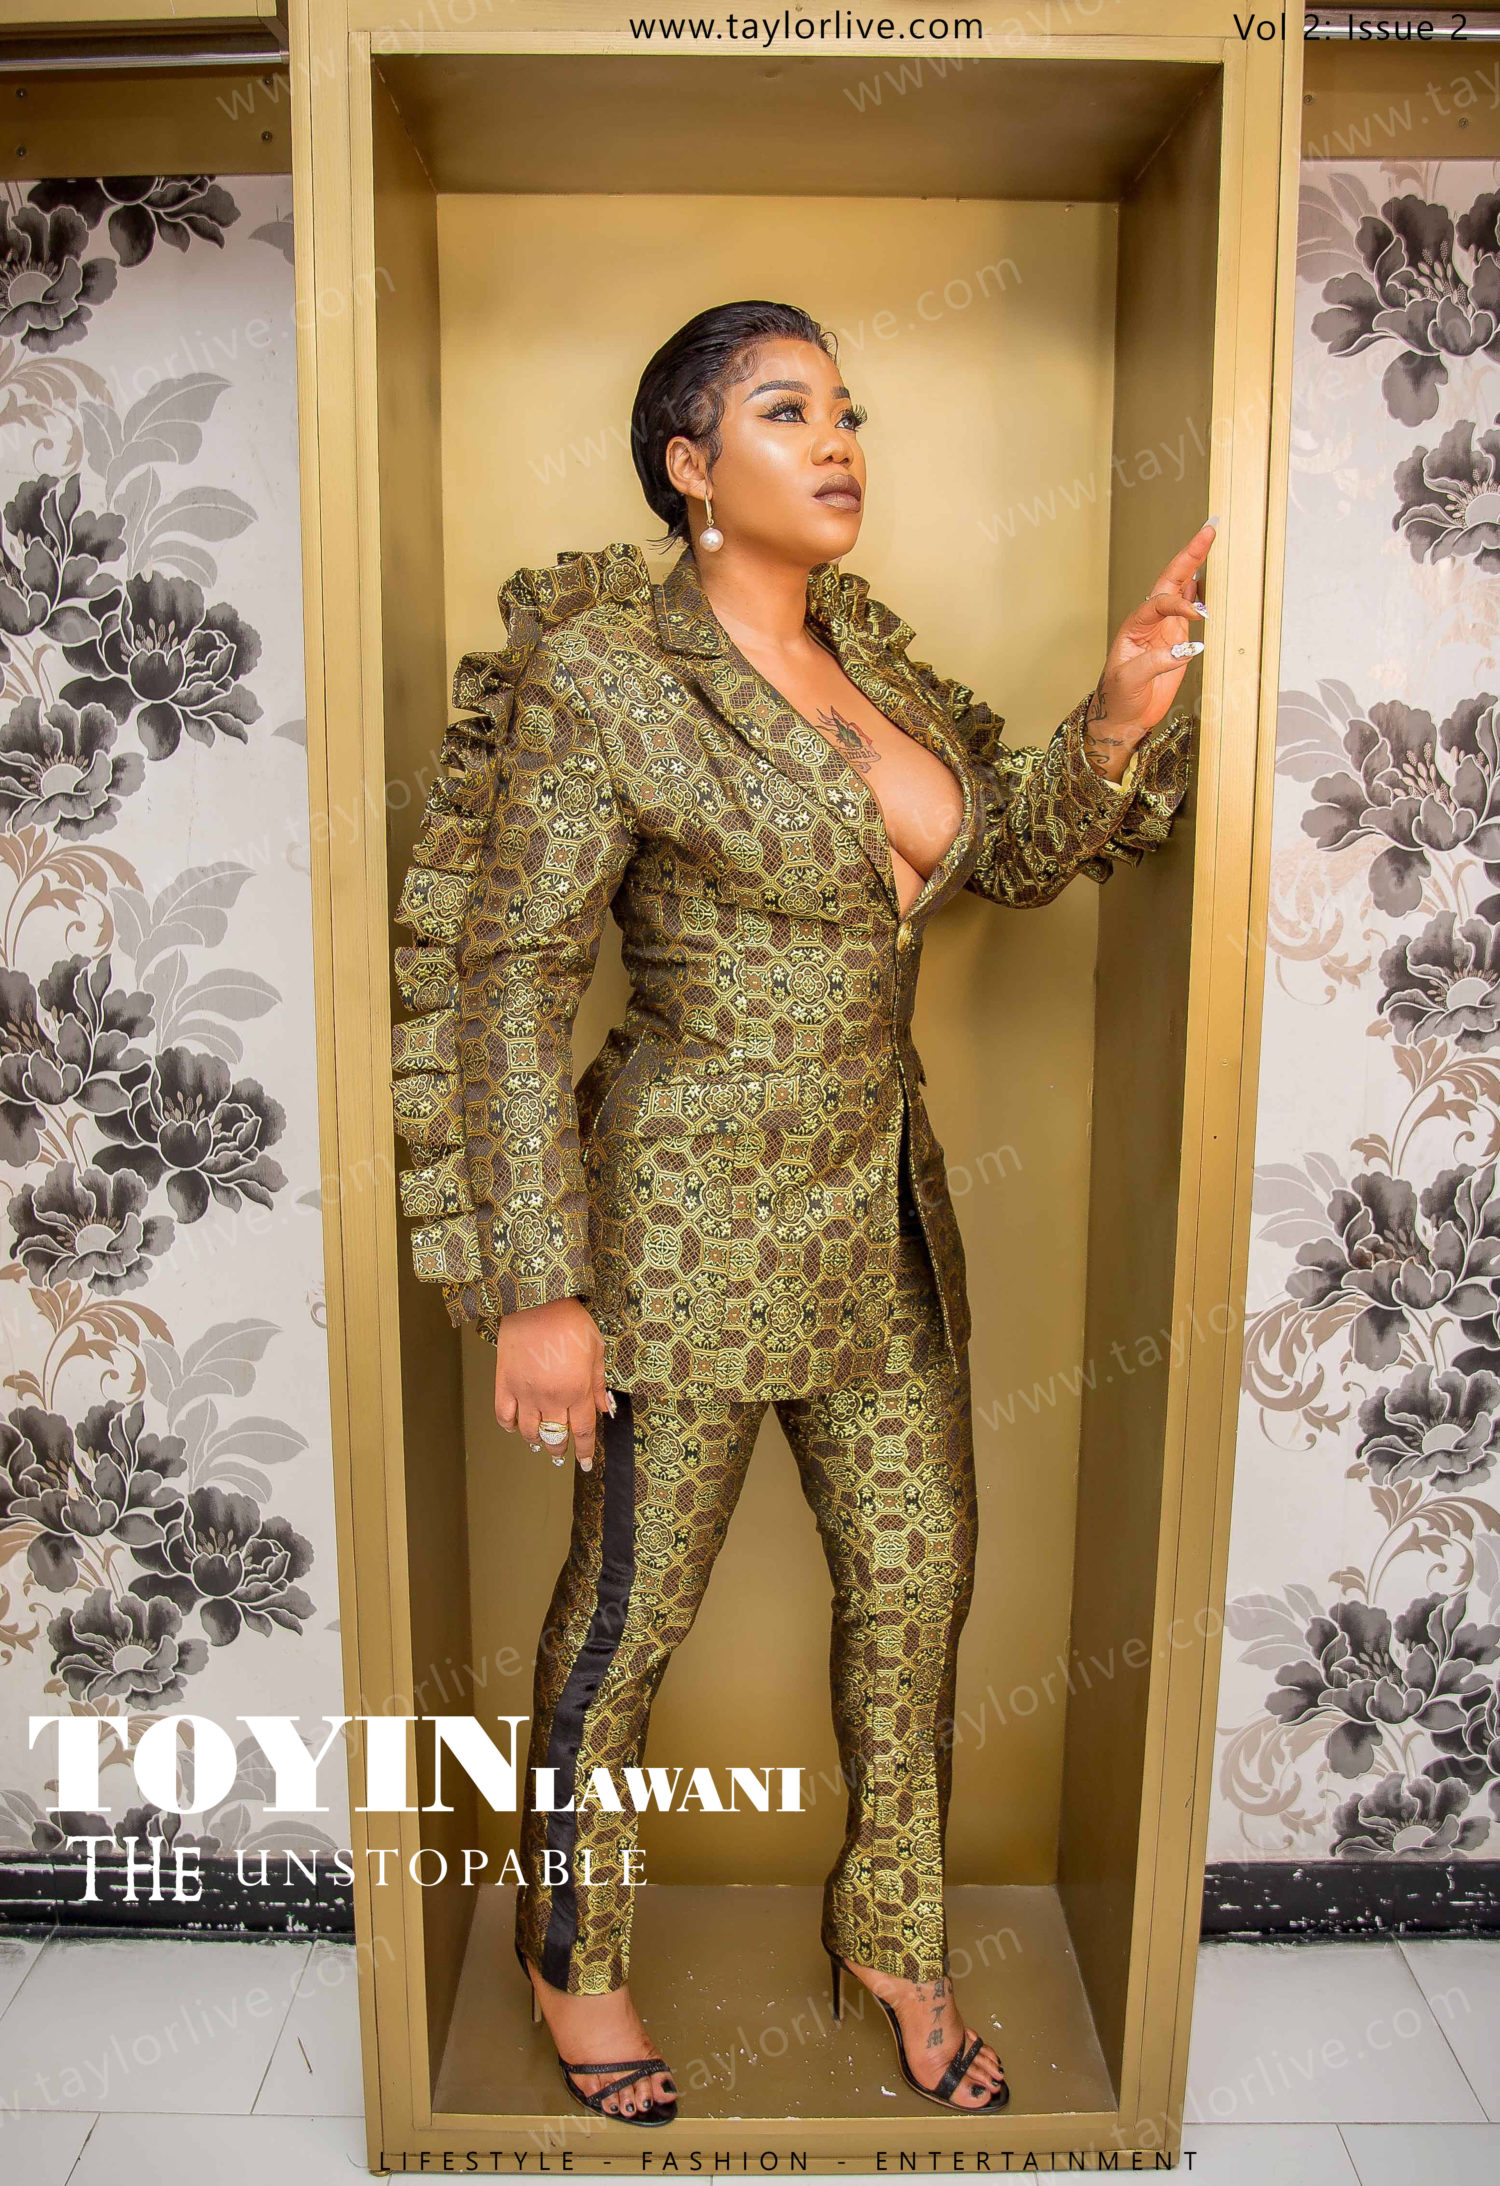 Toyin Lawani Is Fierce On The Cover Of Taylor Live Magazine's Latest Issue!